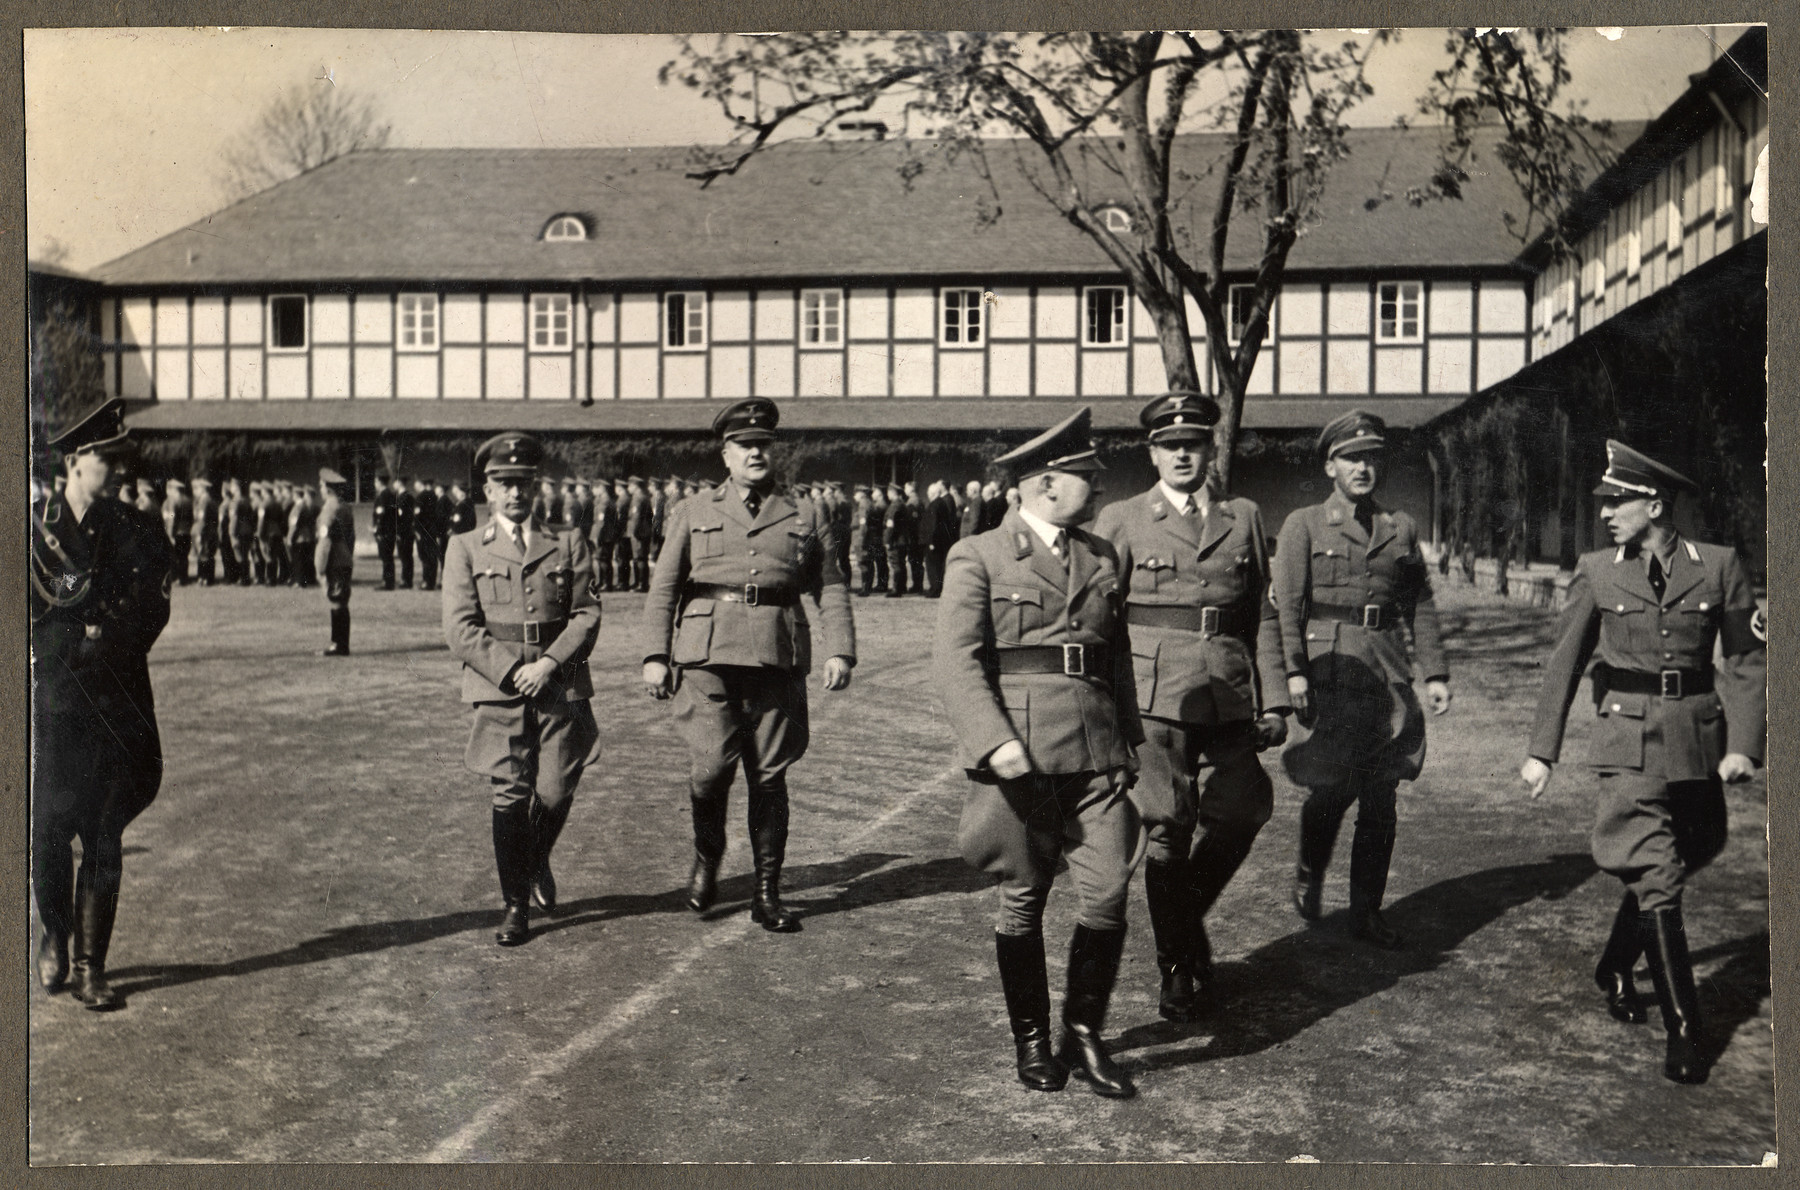 Nazi officials walk in a courtyard at the seminar for Reich training in Erwitte.